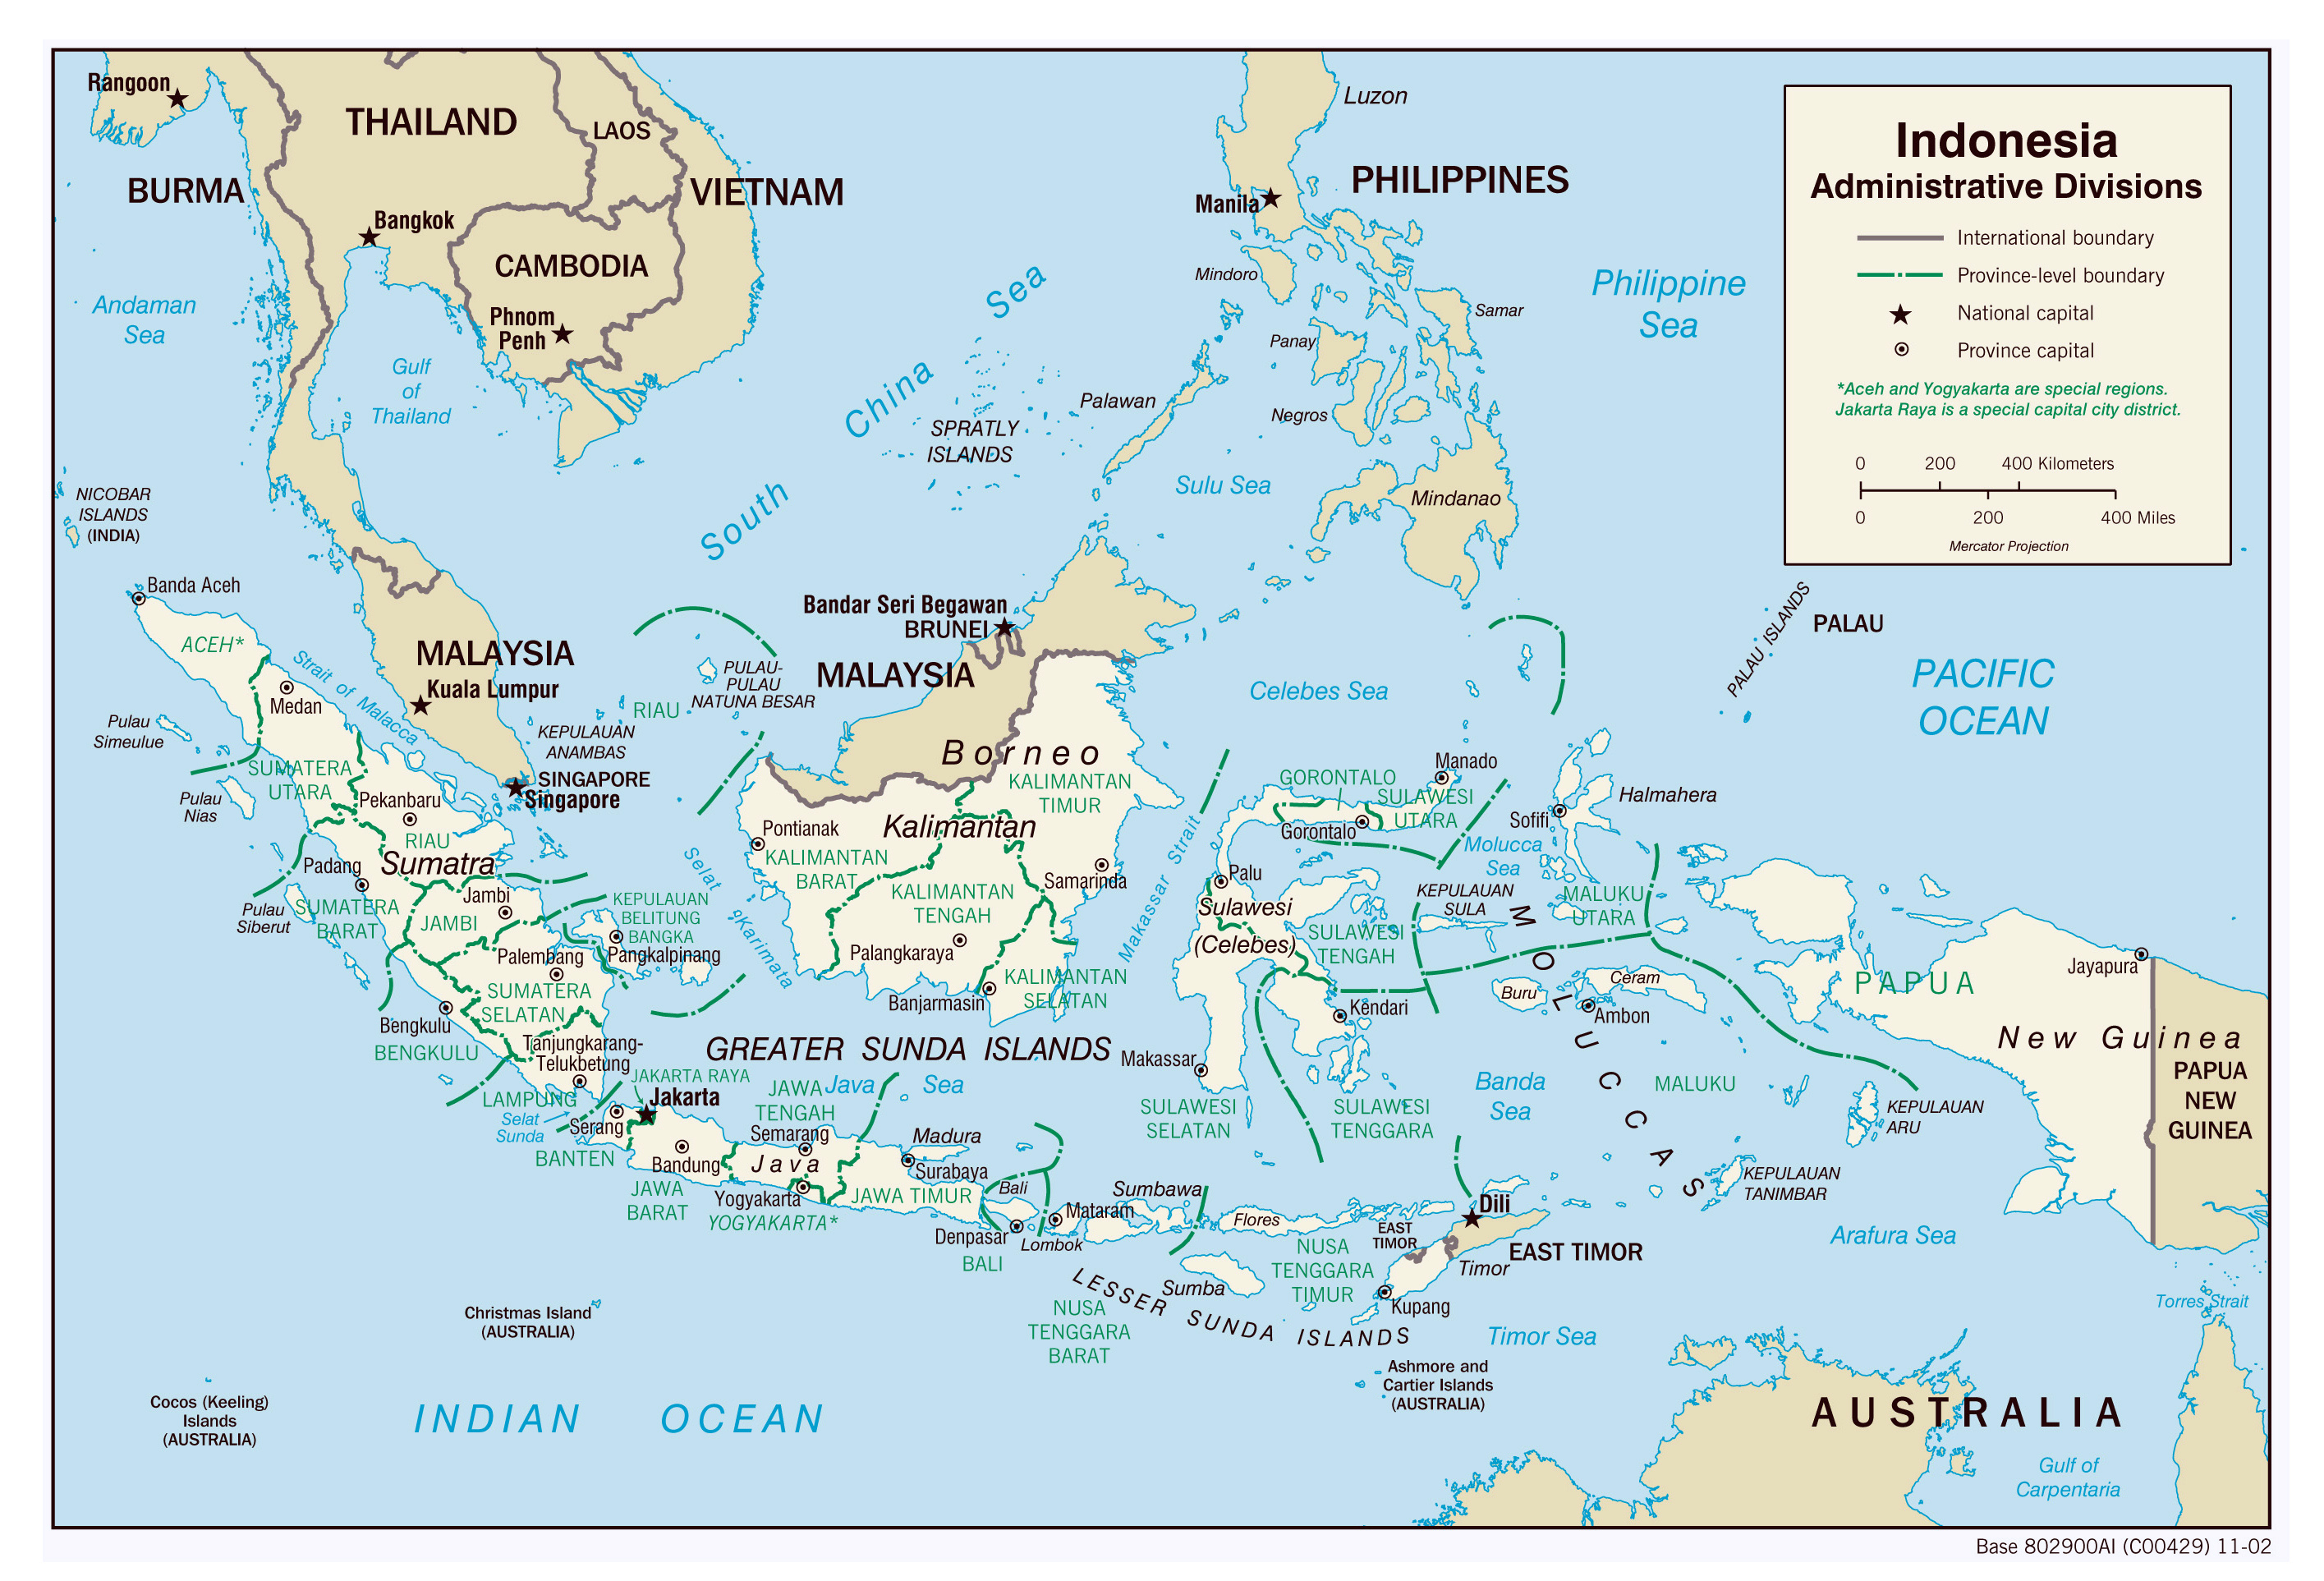 Map Of Asia With Capital Cities.Large Detailed Administrative Divisions Map Of Indonesia With Major